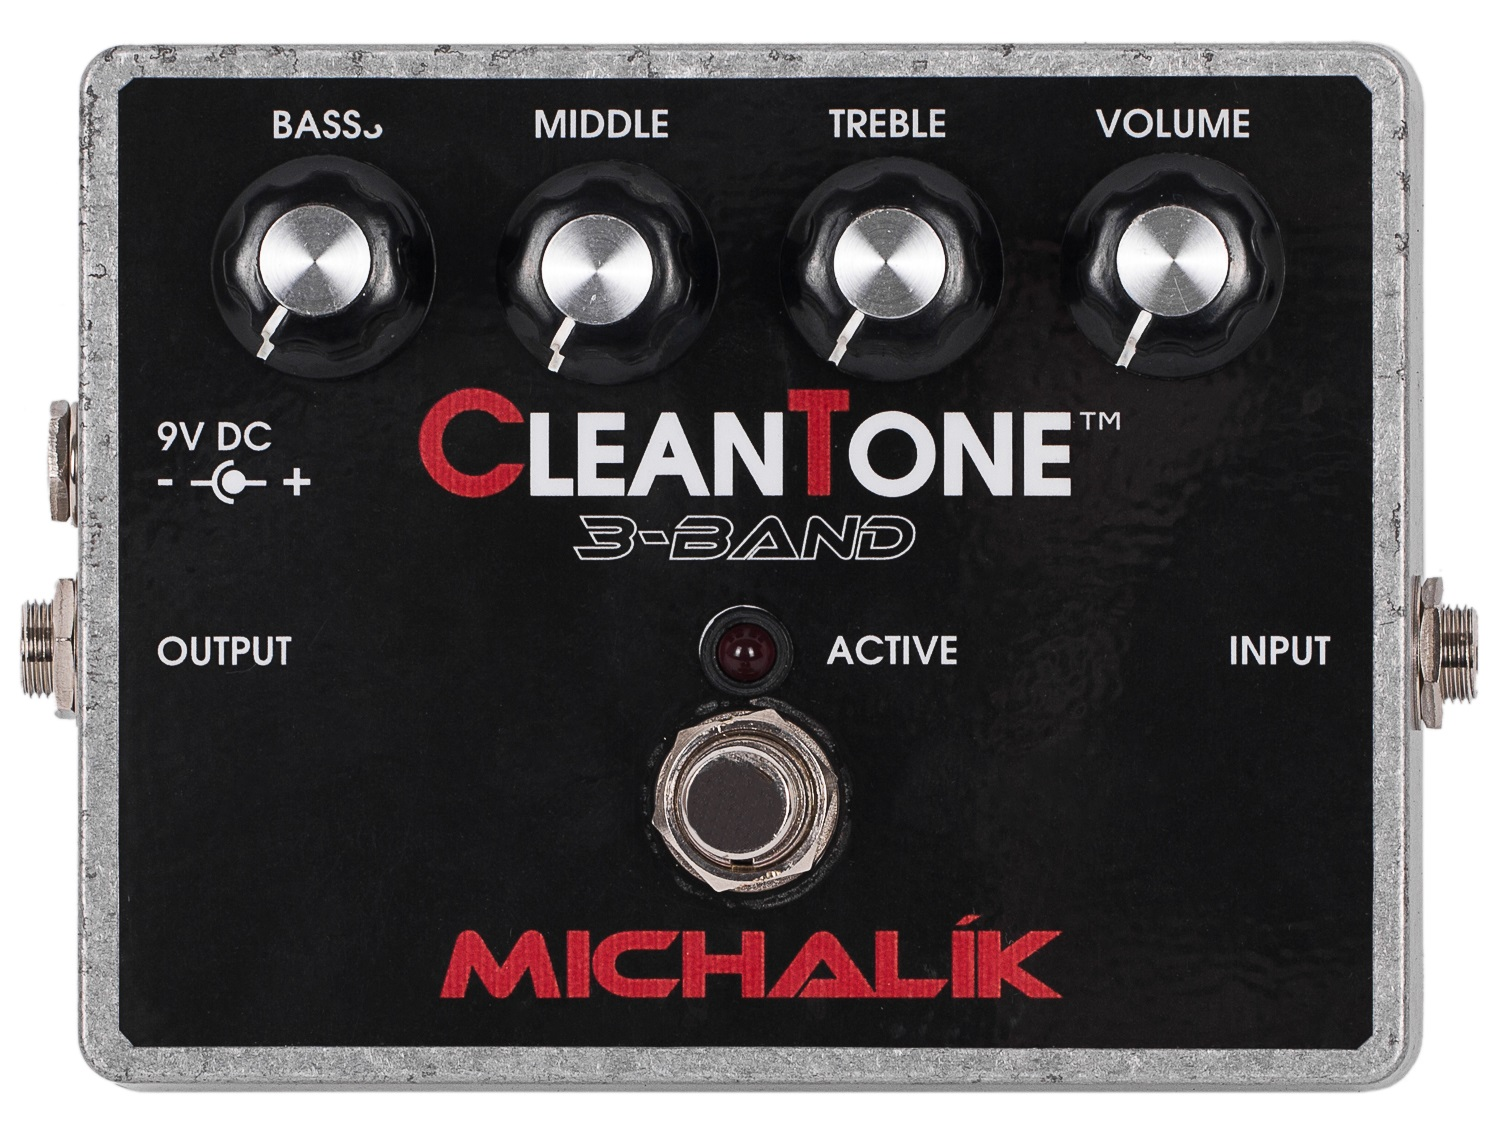 Michalík Clean Tone 3 Band